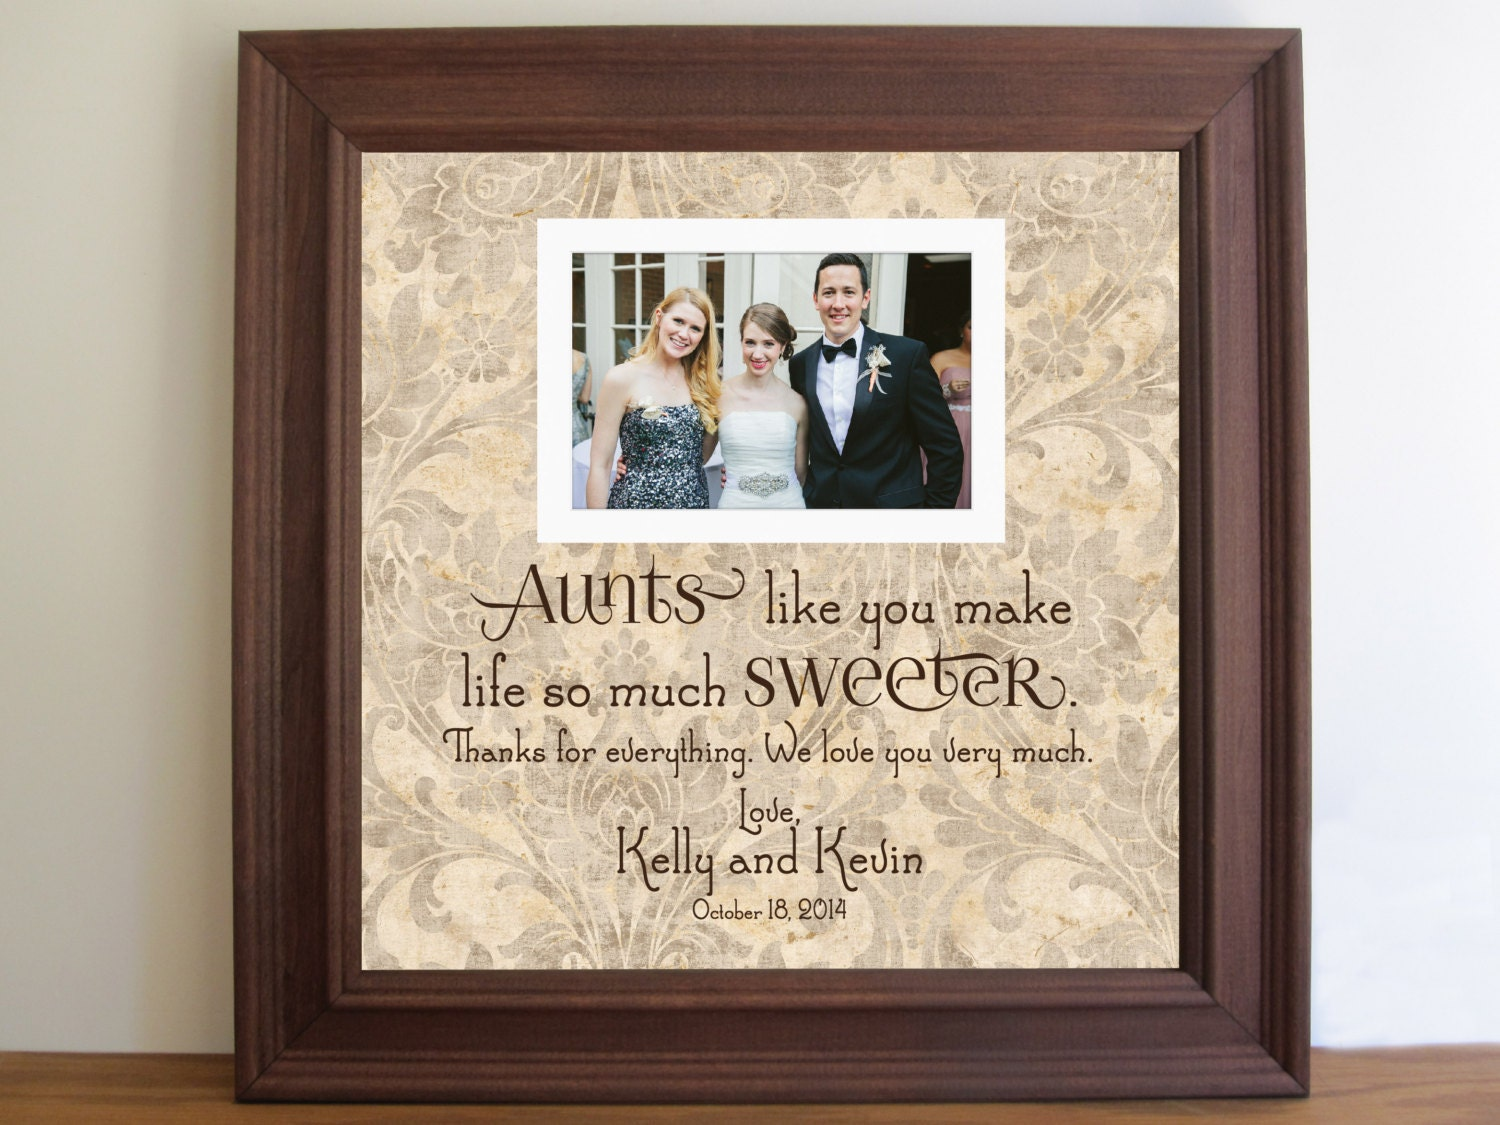 wedding gift photo frame skinnycargopantsaddict wedding ideas wedding gift photo frame skinnycargopantsaddict wedding